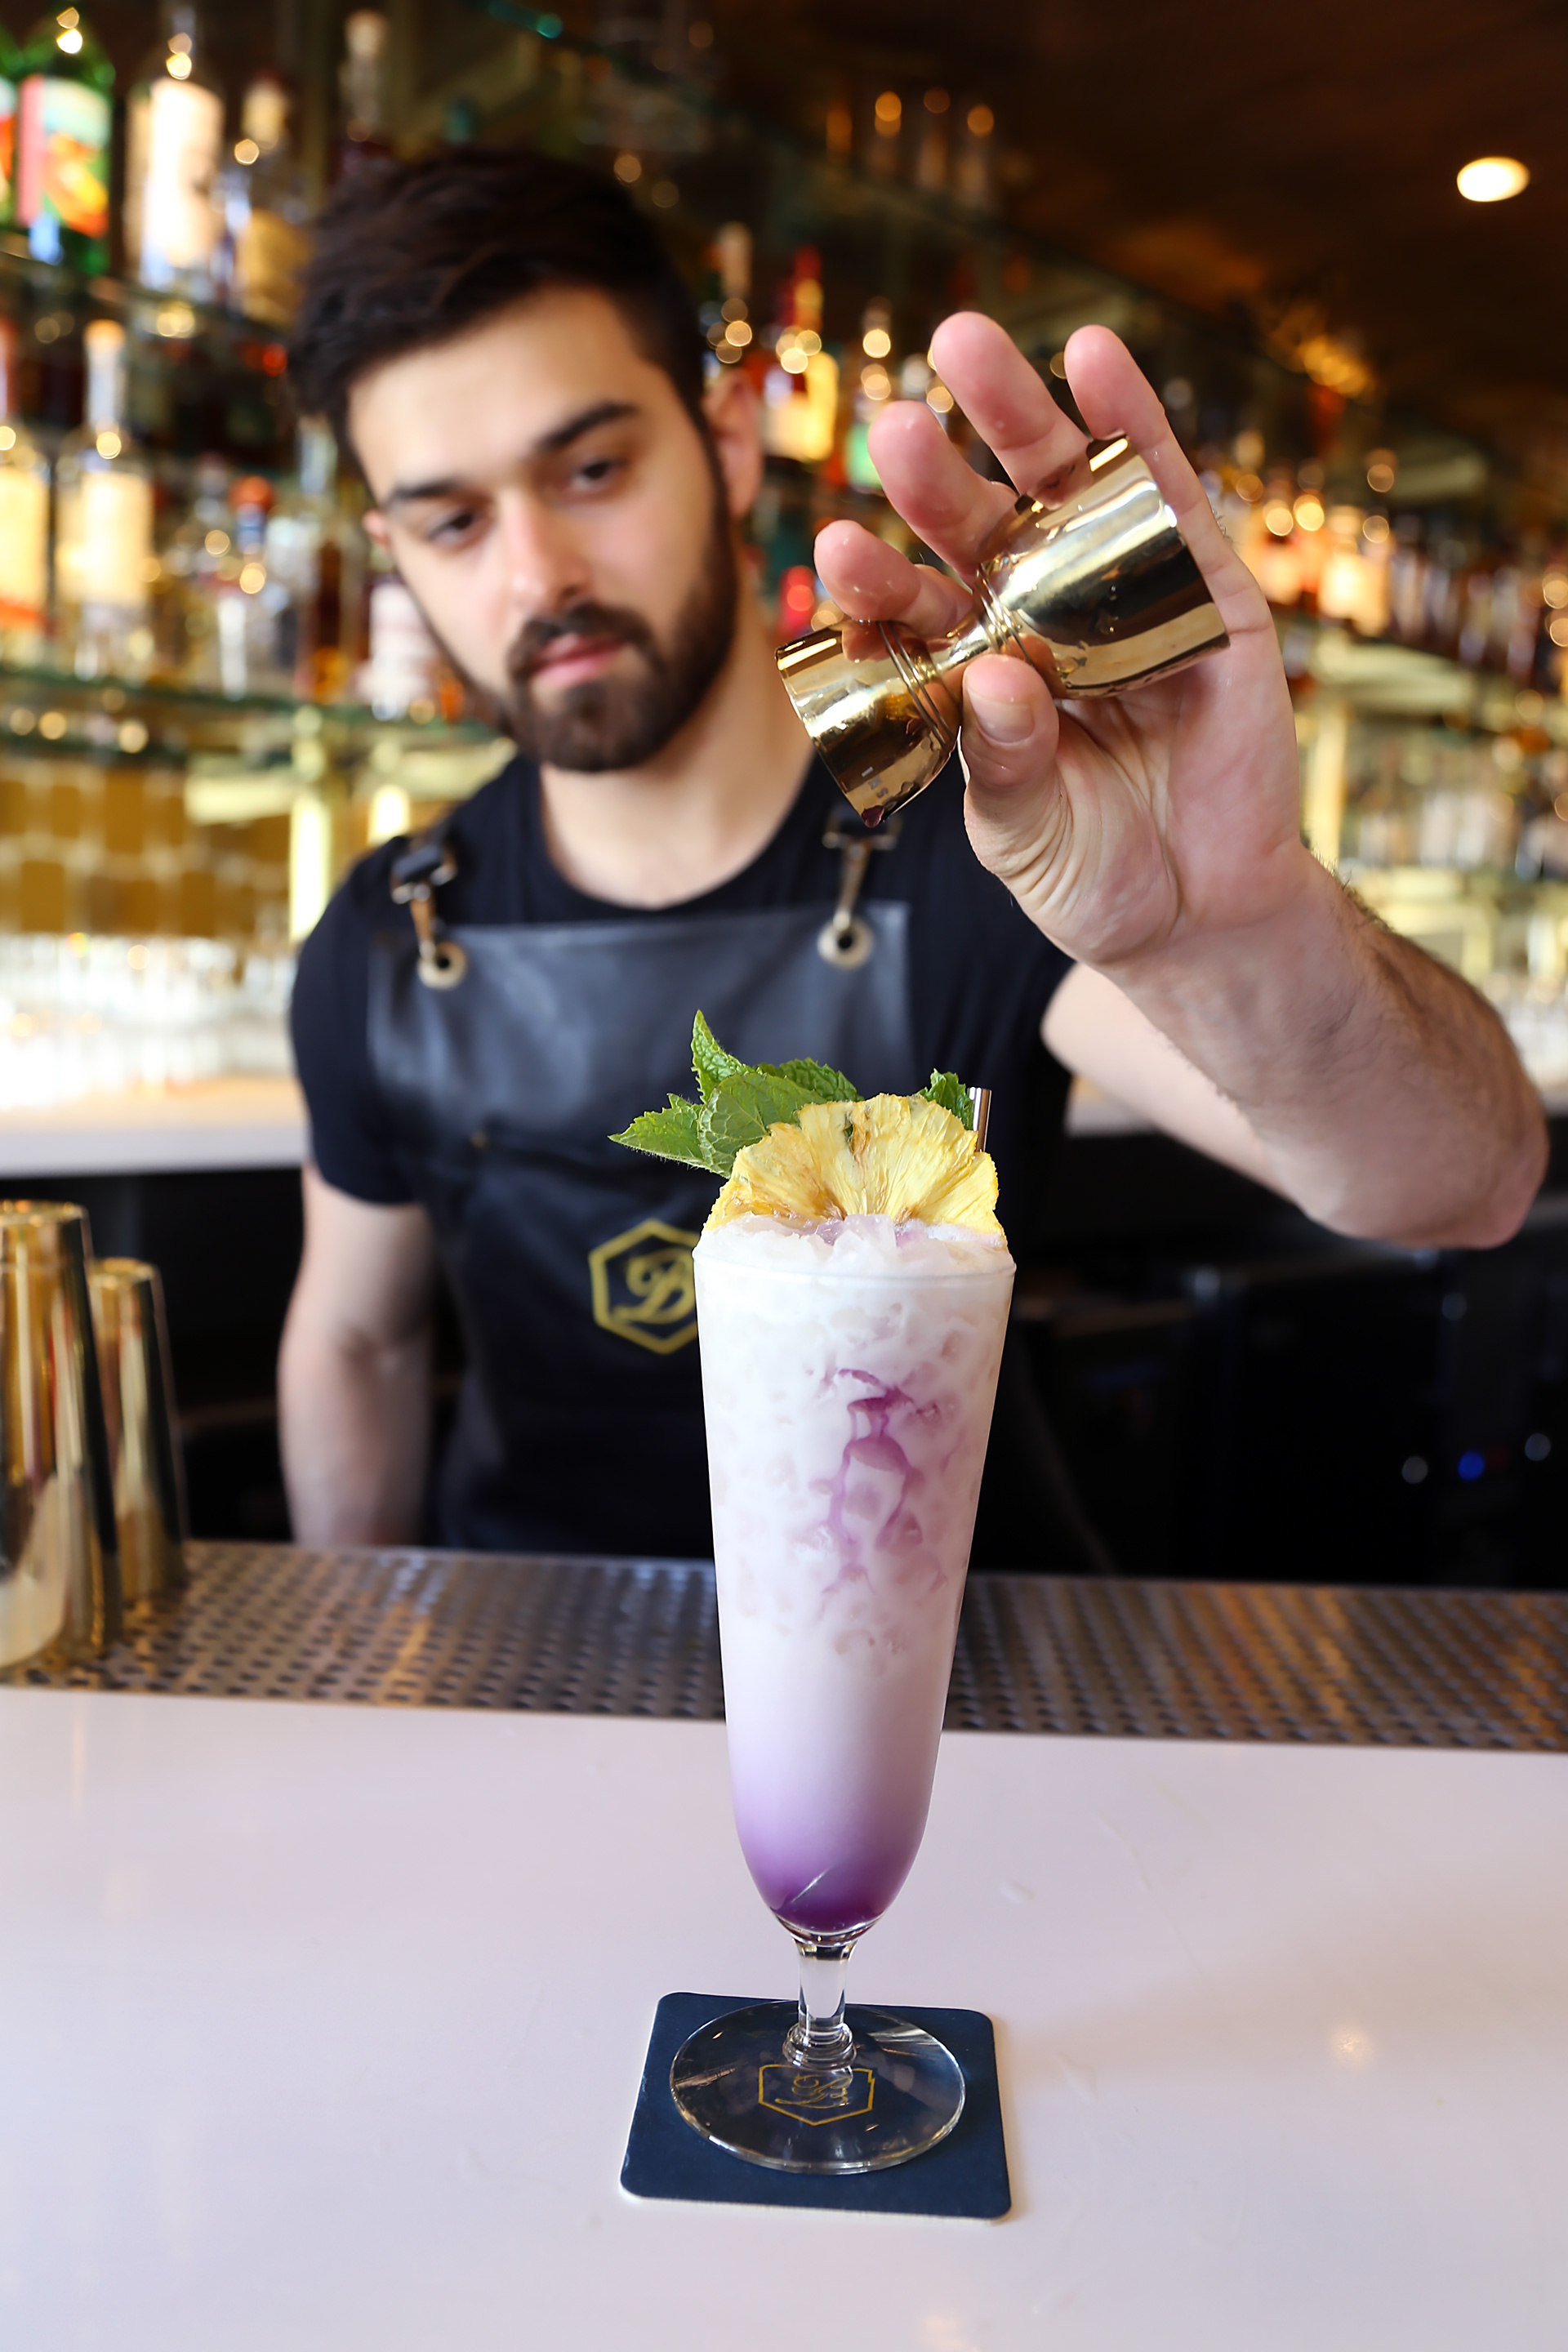 Lead Bartender Emilio Salehi puts the finishing touches on the Bikini Drifter